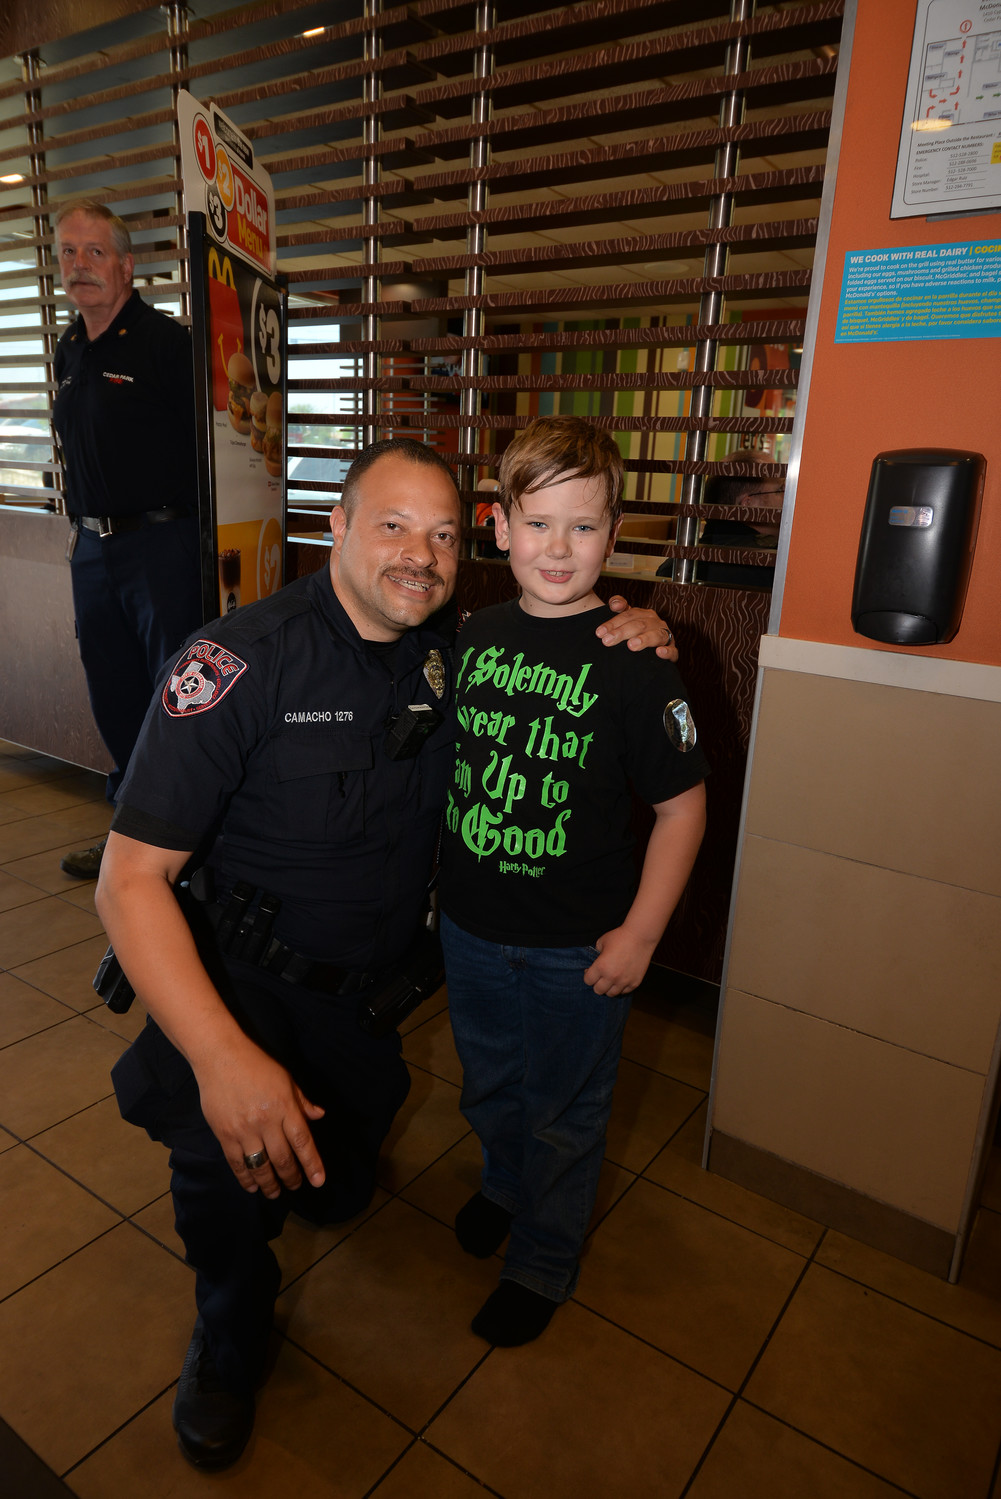 Cedar Park Police Officer David Camacho gets a hug from a fan while raising funds for the 100 Club of Central Texas.